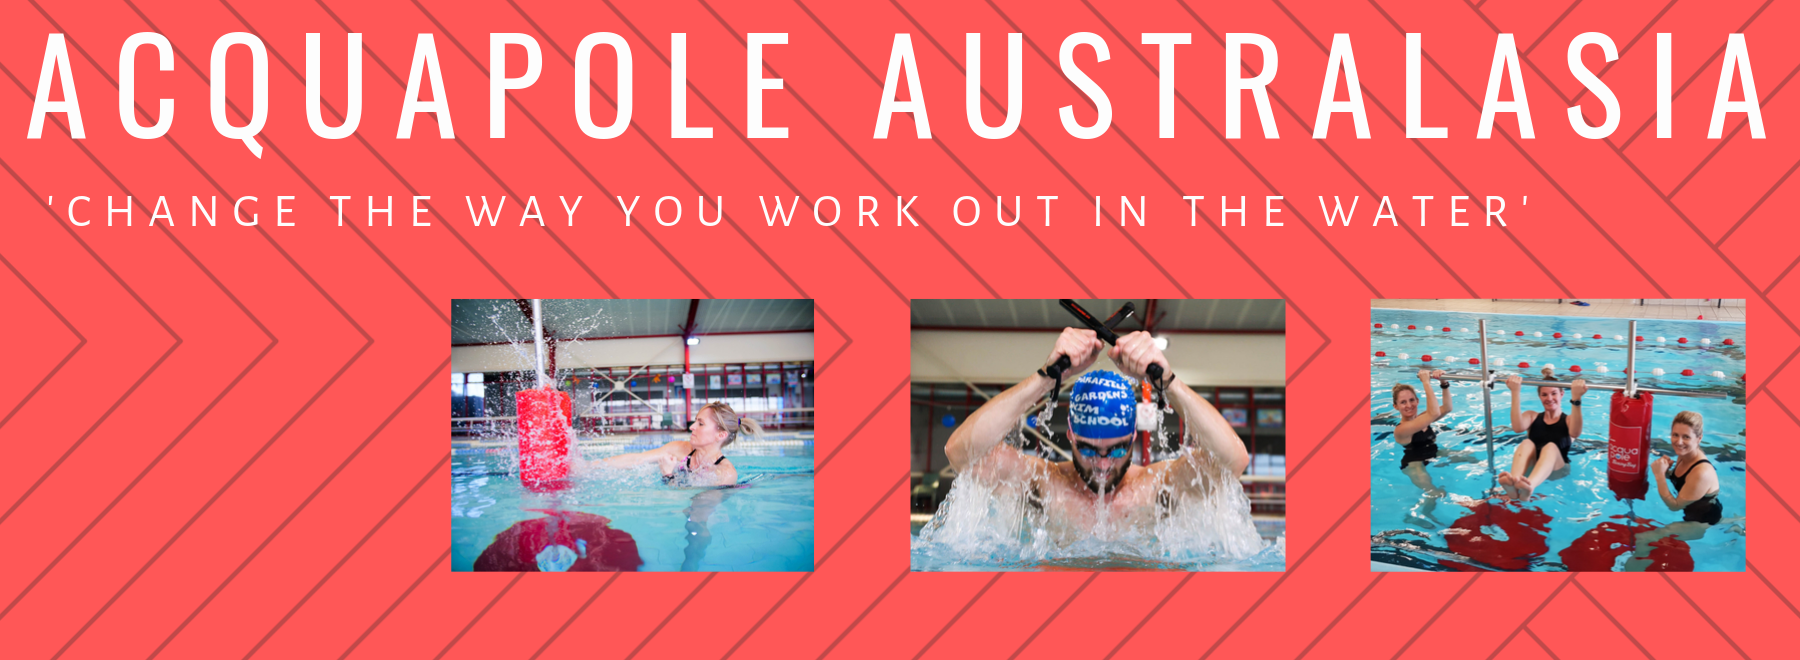 Acuqapole Australasia - Change the way you work out in the water